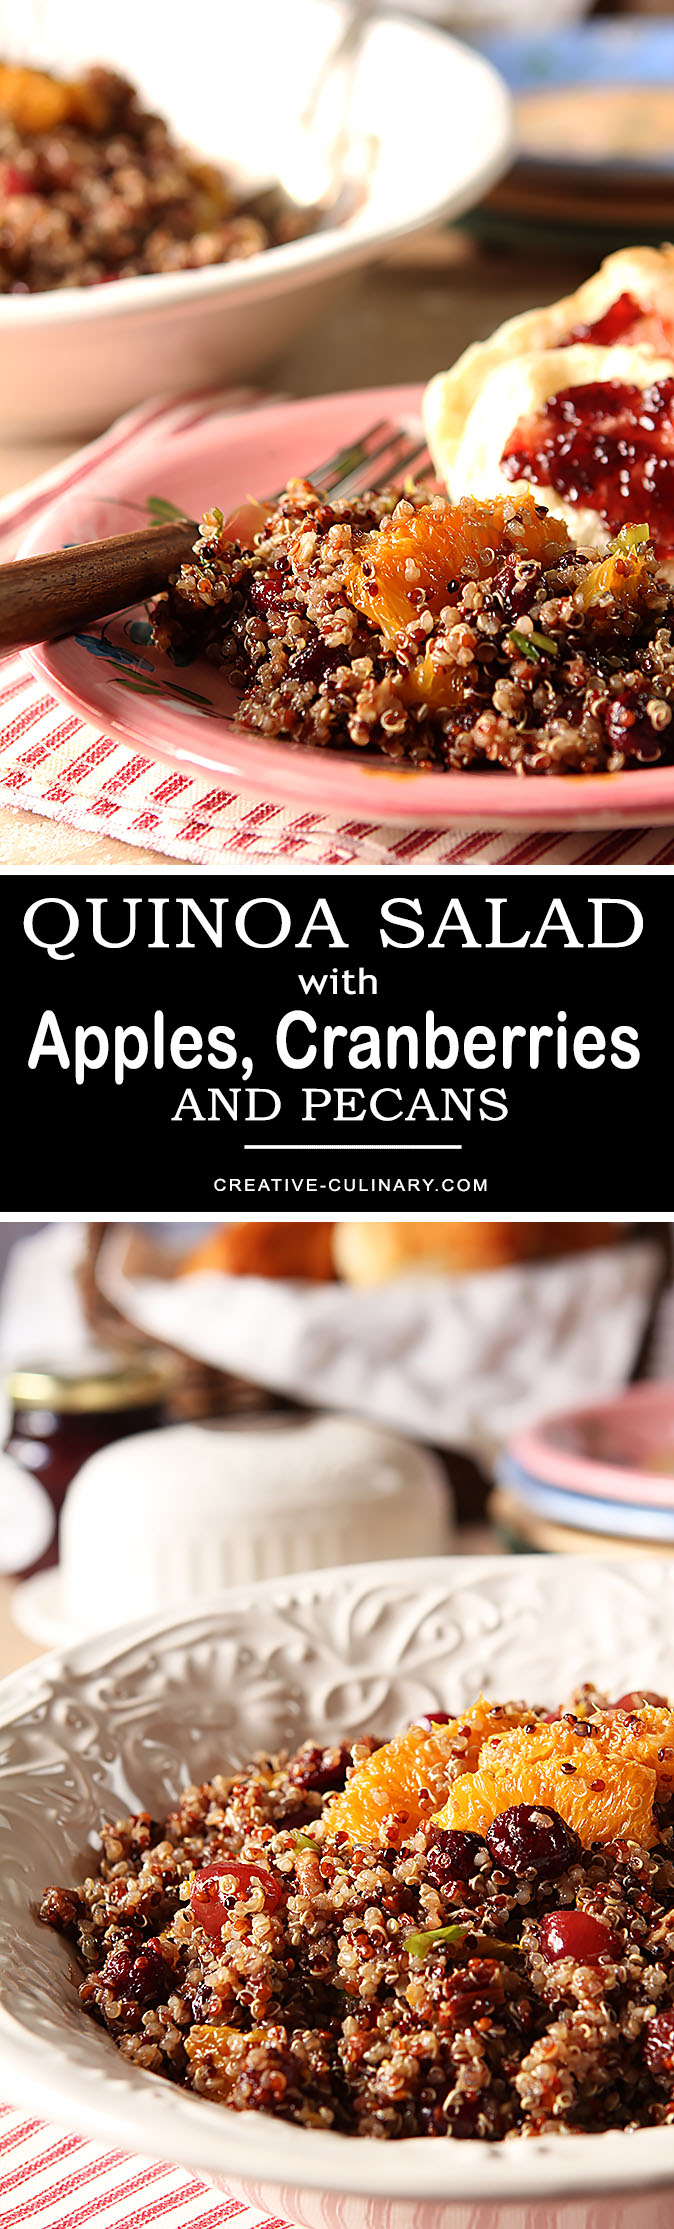 Quinoa Salad with Oranges, Pecans and Cranberries is a beautiful Fall salad that is both healthy and delicious. Perfect for the holidays!